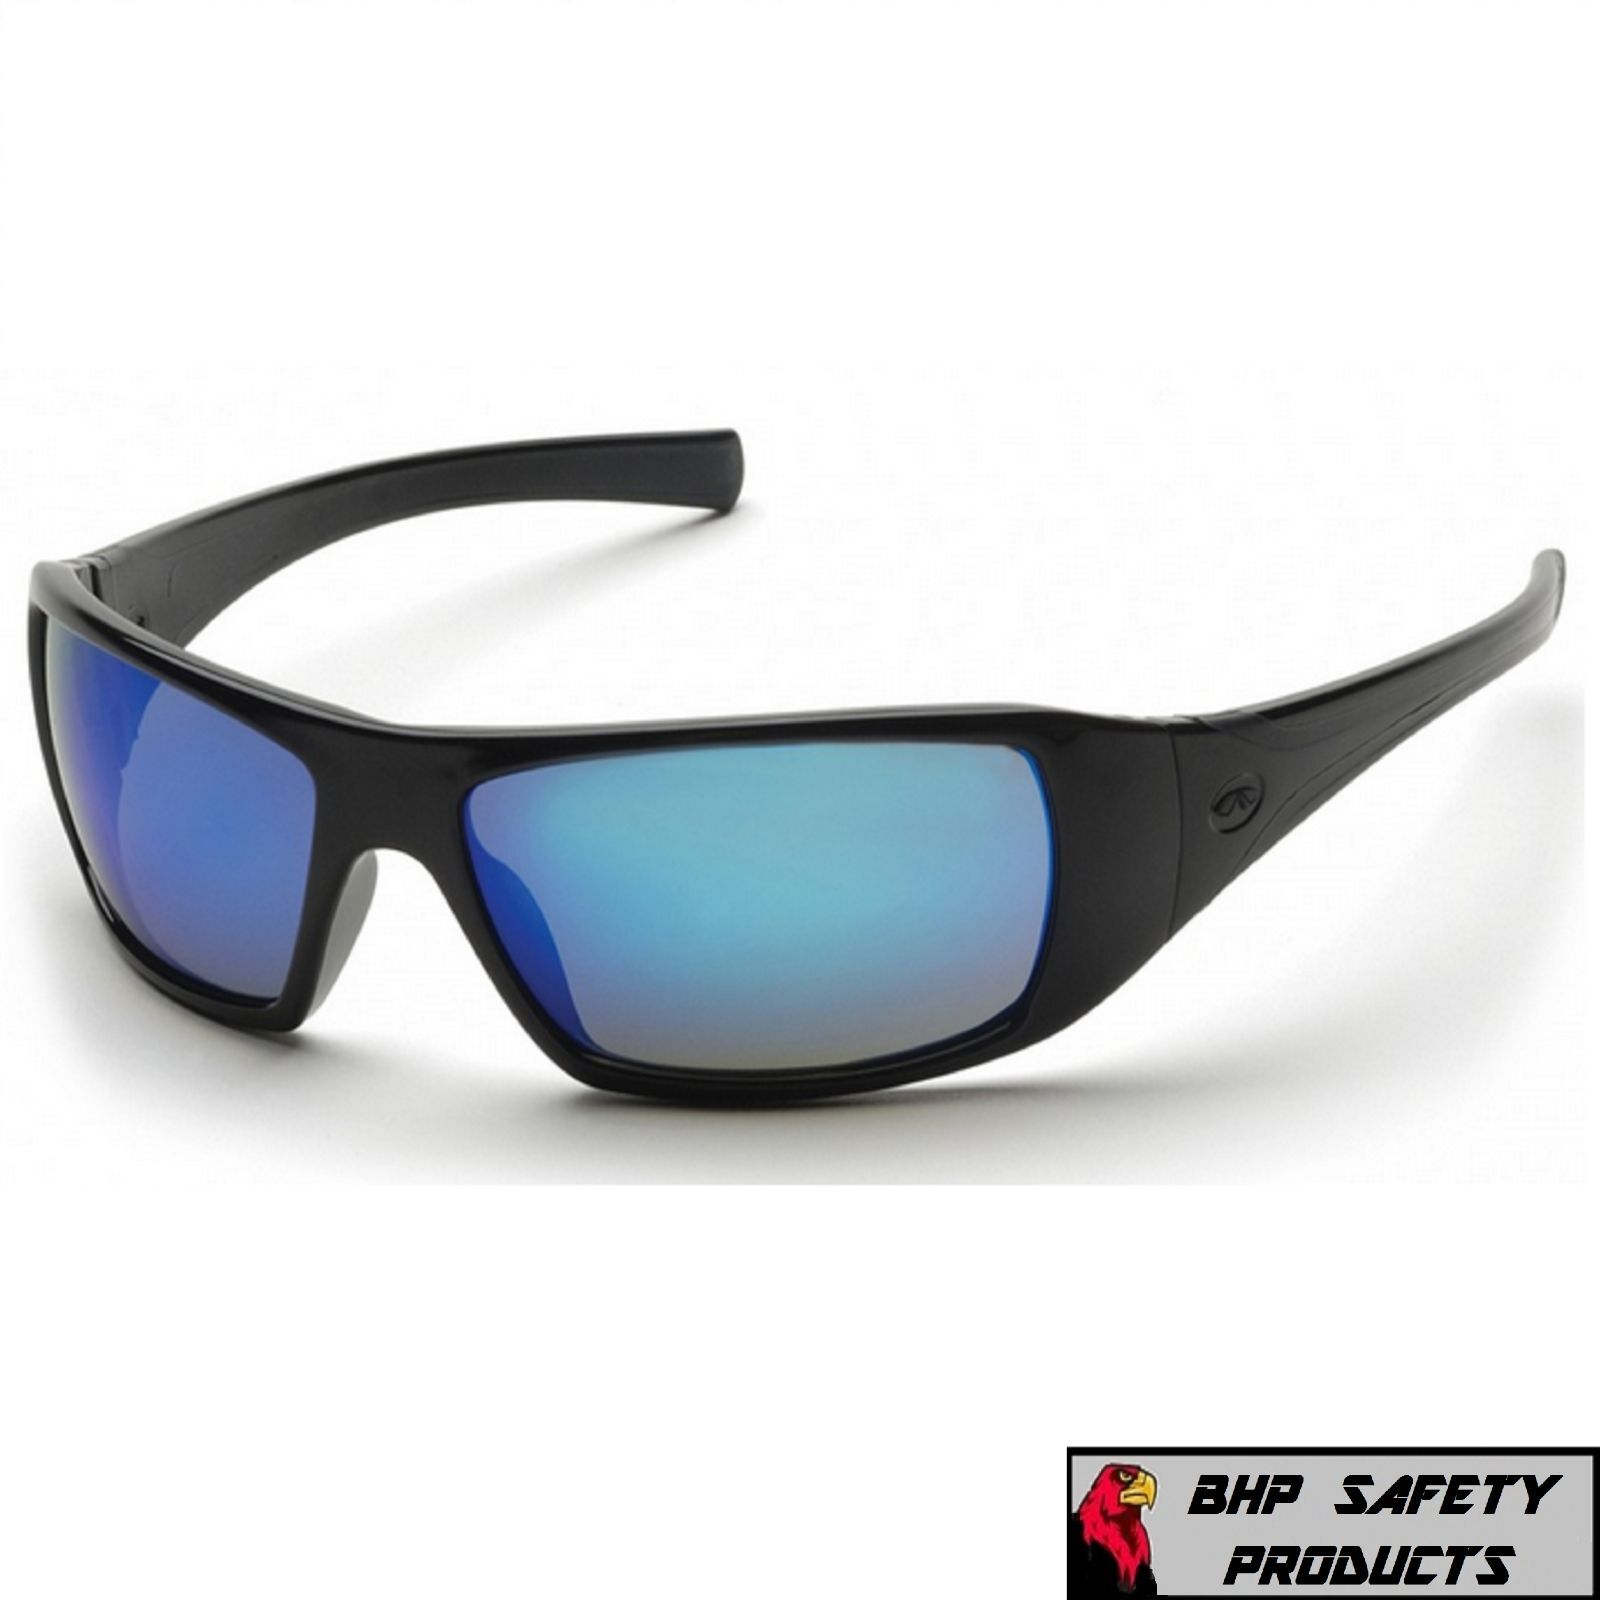 PYRAMEX GOLIATH SAFETY GLASSES MOTORCYCLE SPORT WORK SUNGLASSES Z87+ (1 PAIR) Ice Blue Mirror Lens/ Black Frame SB5665D